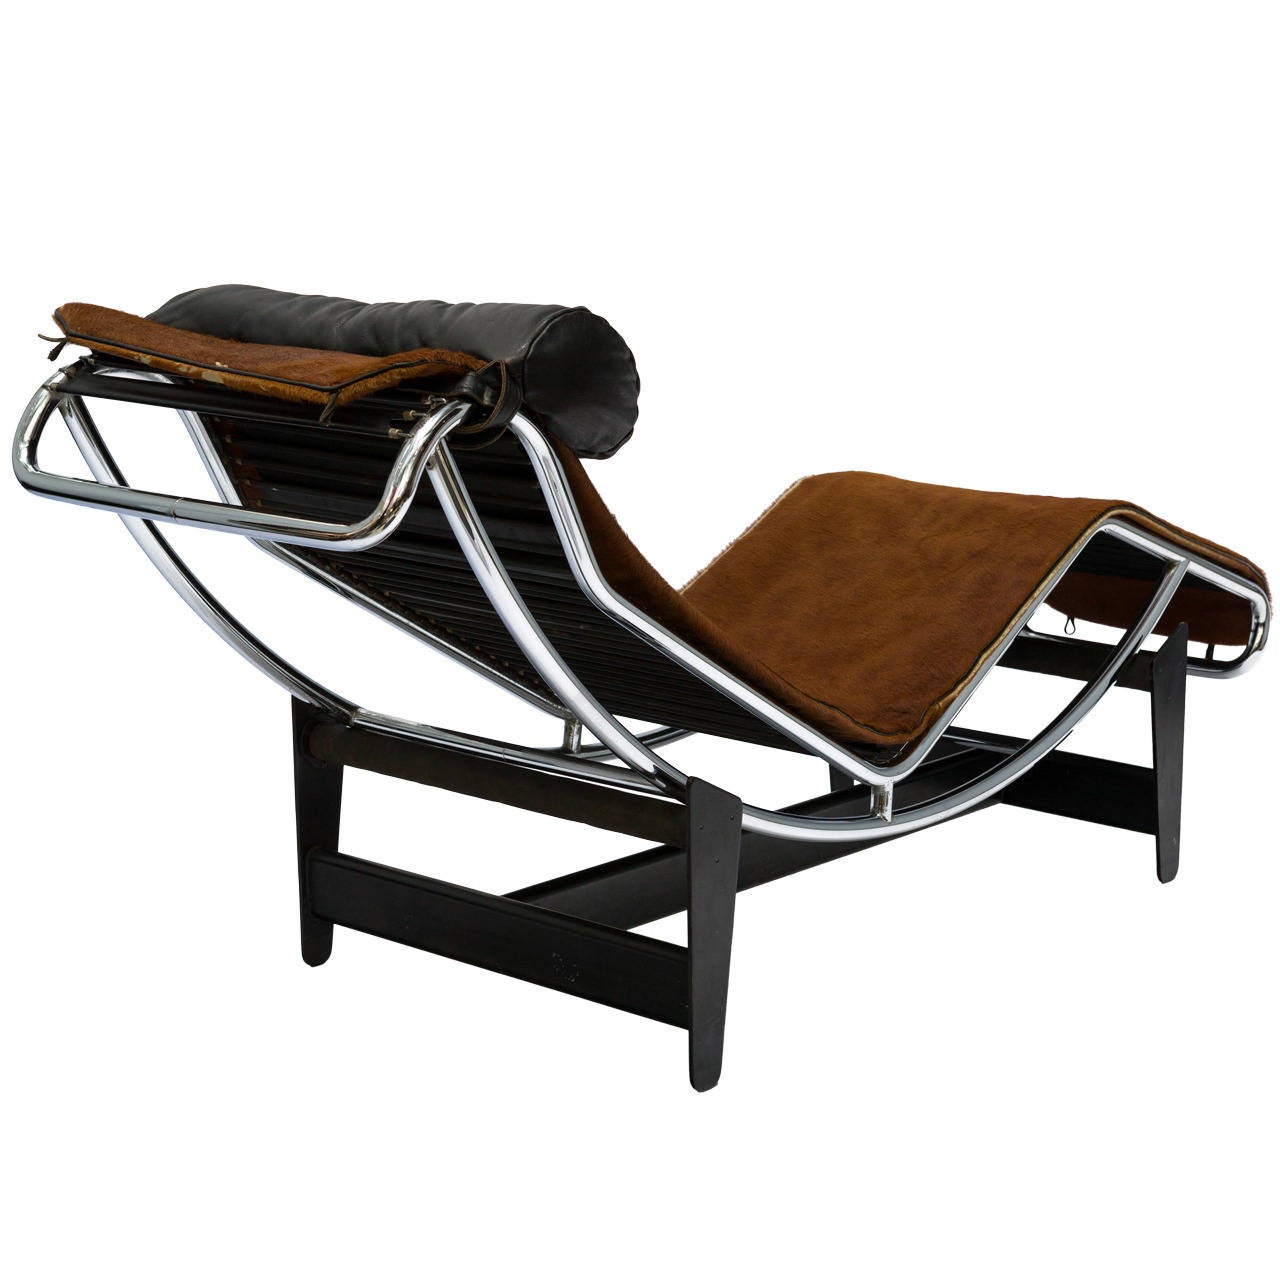 Le corbusier lc4 chaise lounge chair in cowhide for sale for Chaise le corbusier